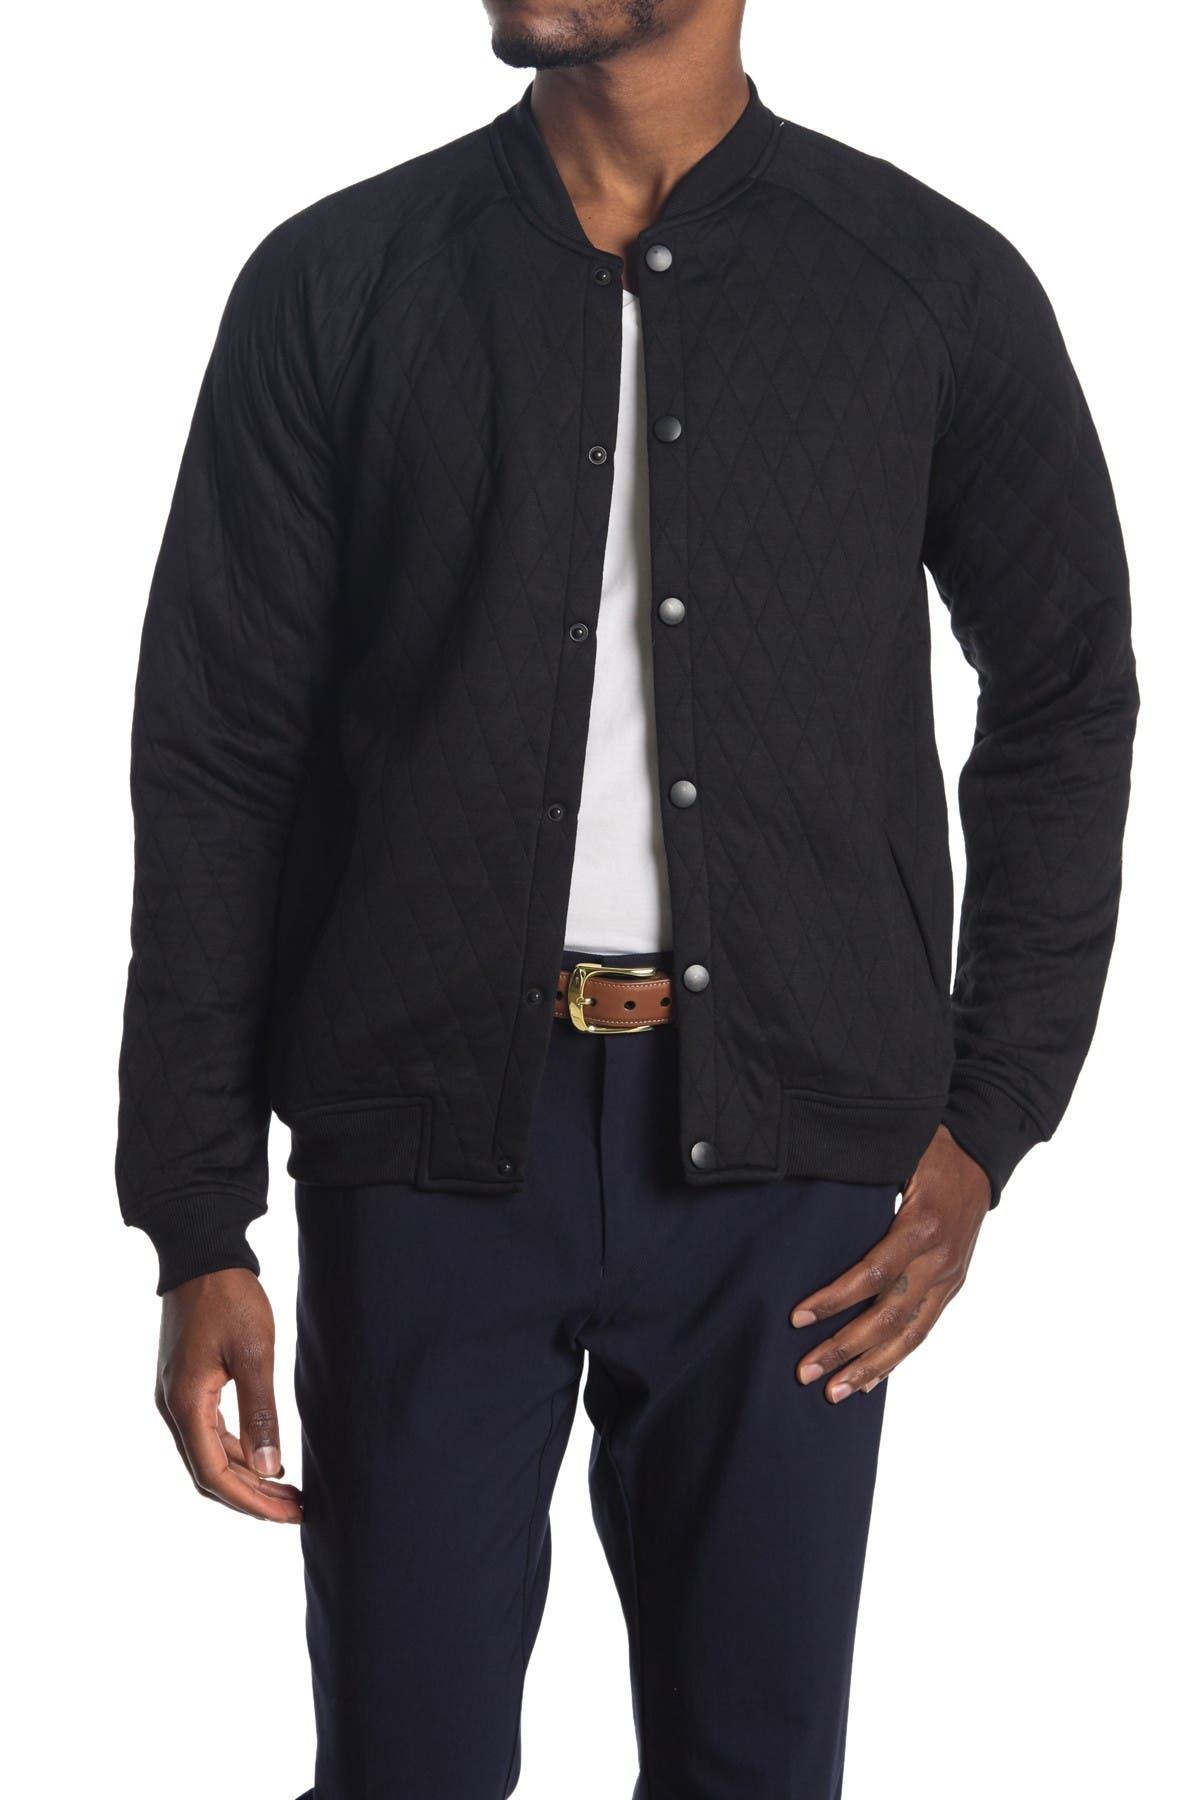 Image of Sovereign Code Princeton Quilted Bomber Jacket